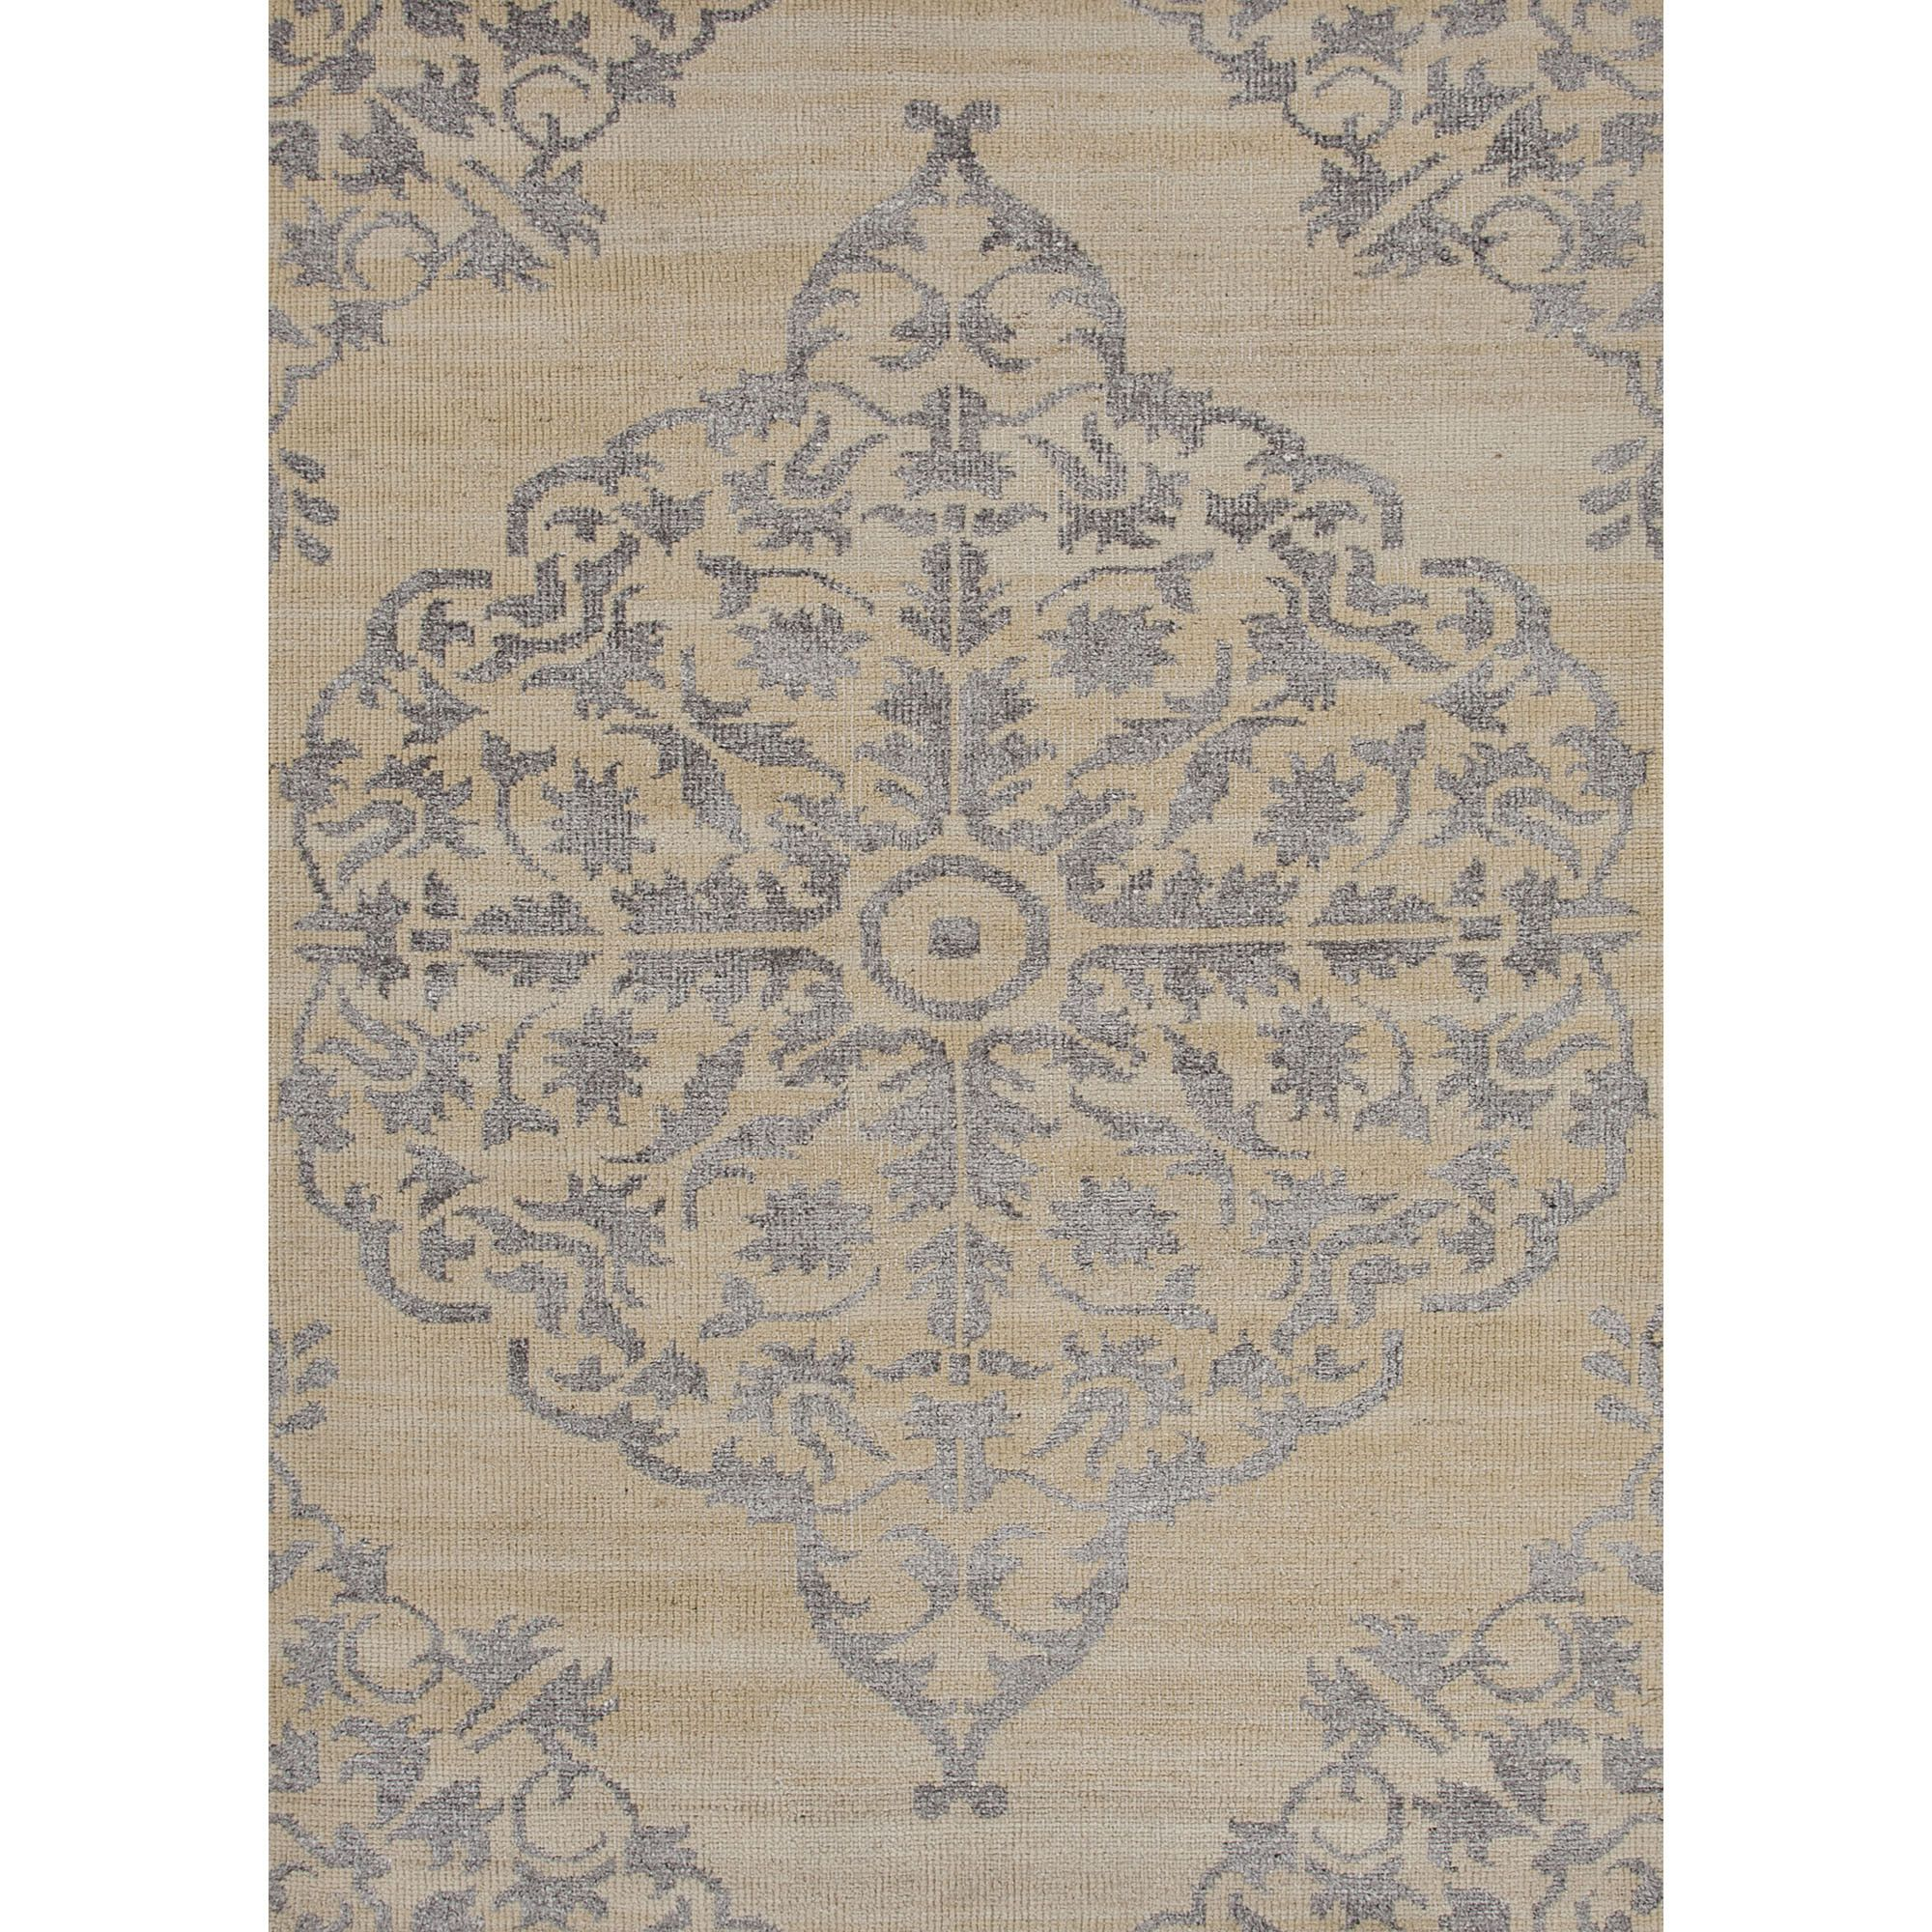 Heritage Collection Chantilly Rug in Gardenia & Alabaster Gleam by Jaipur